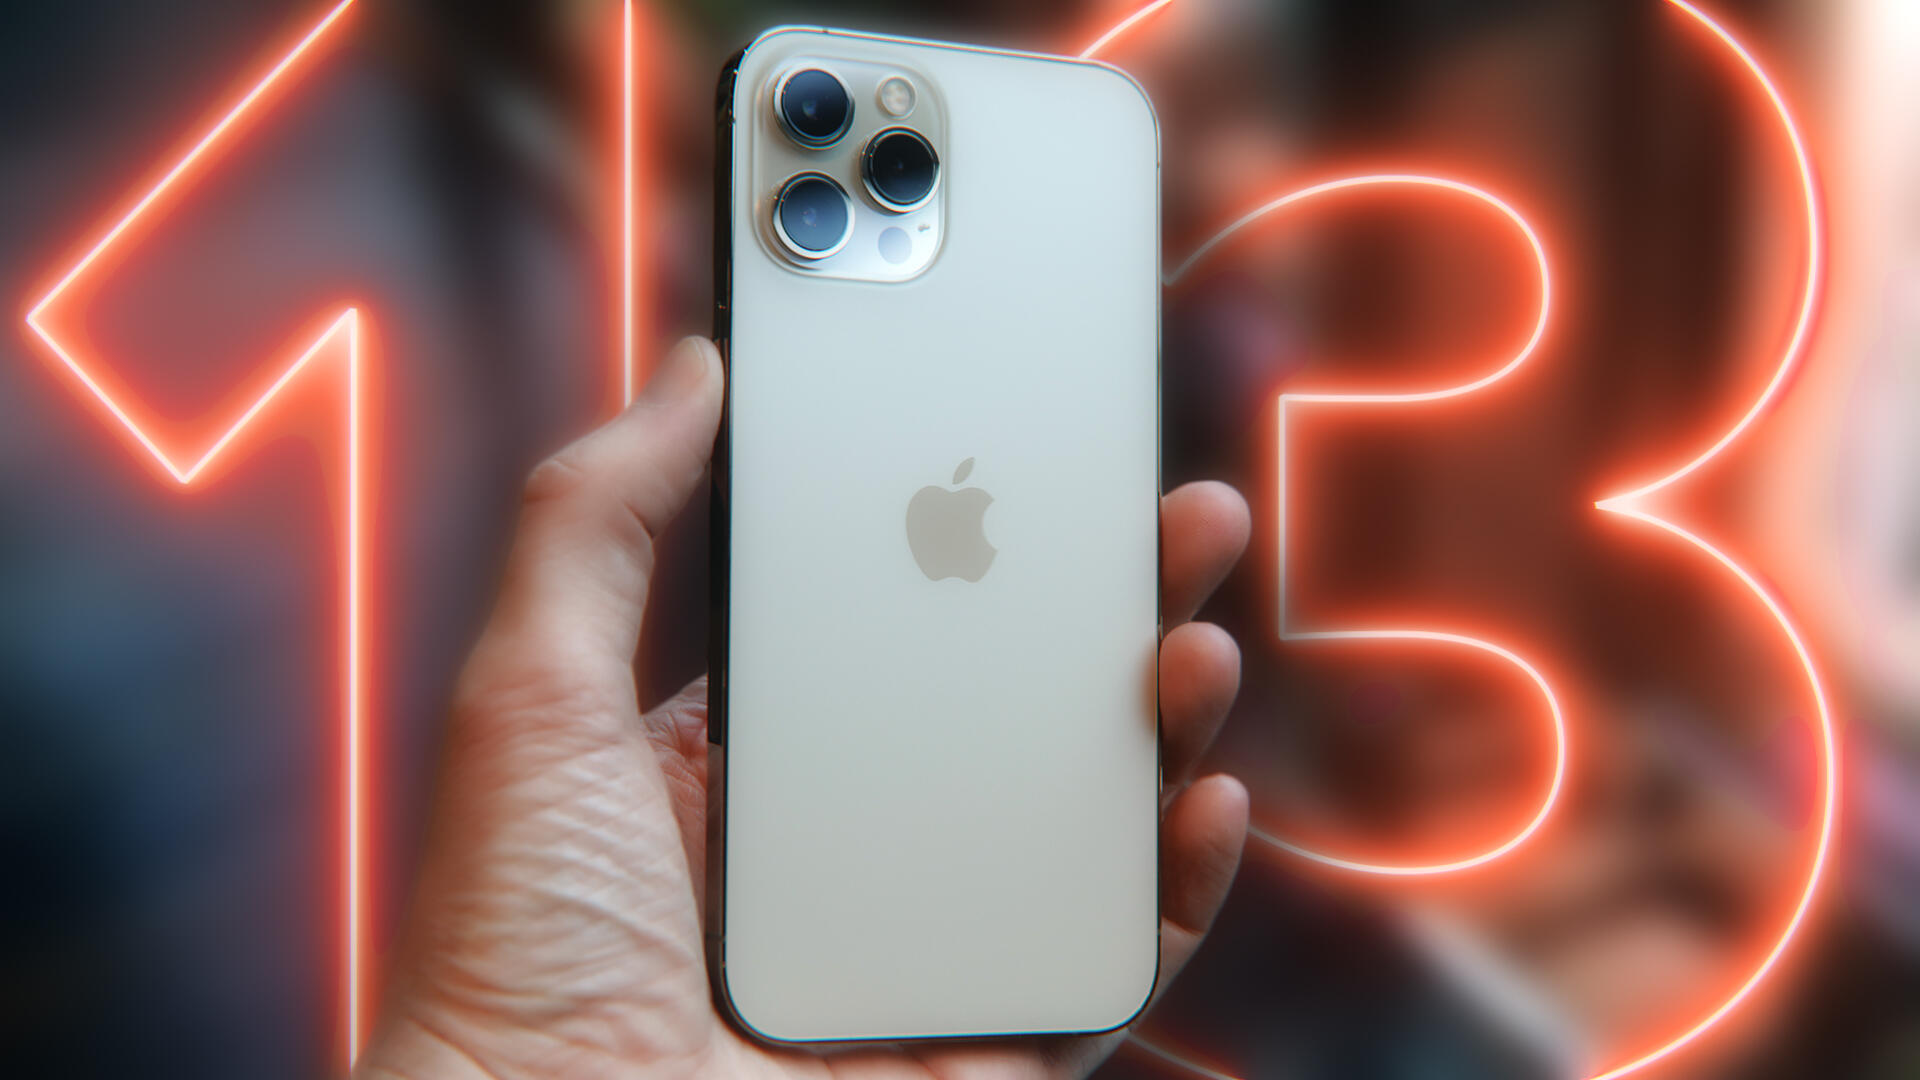 Video: iPhone 13 rumor roundup